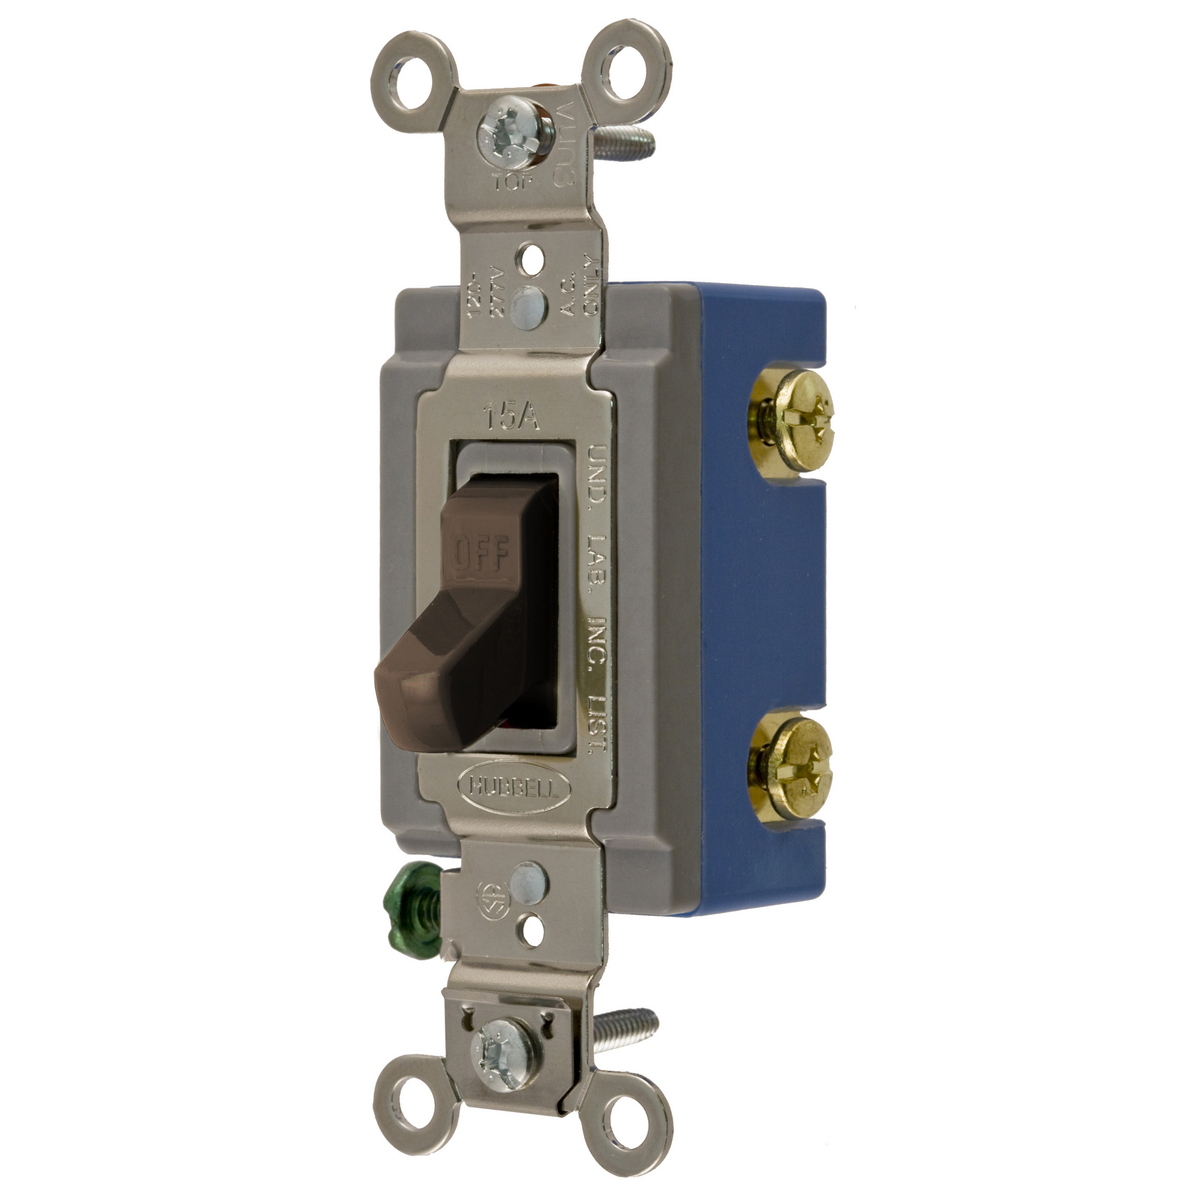 Hbl1201 Industrial Series Switches Electrical Wiring Commercial Single Pole Toggle Switch